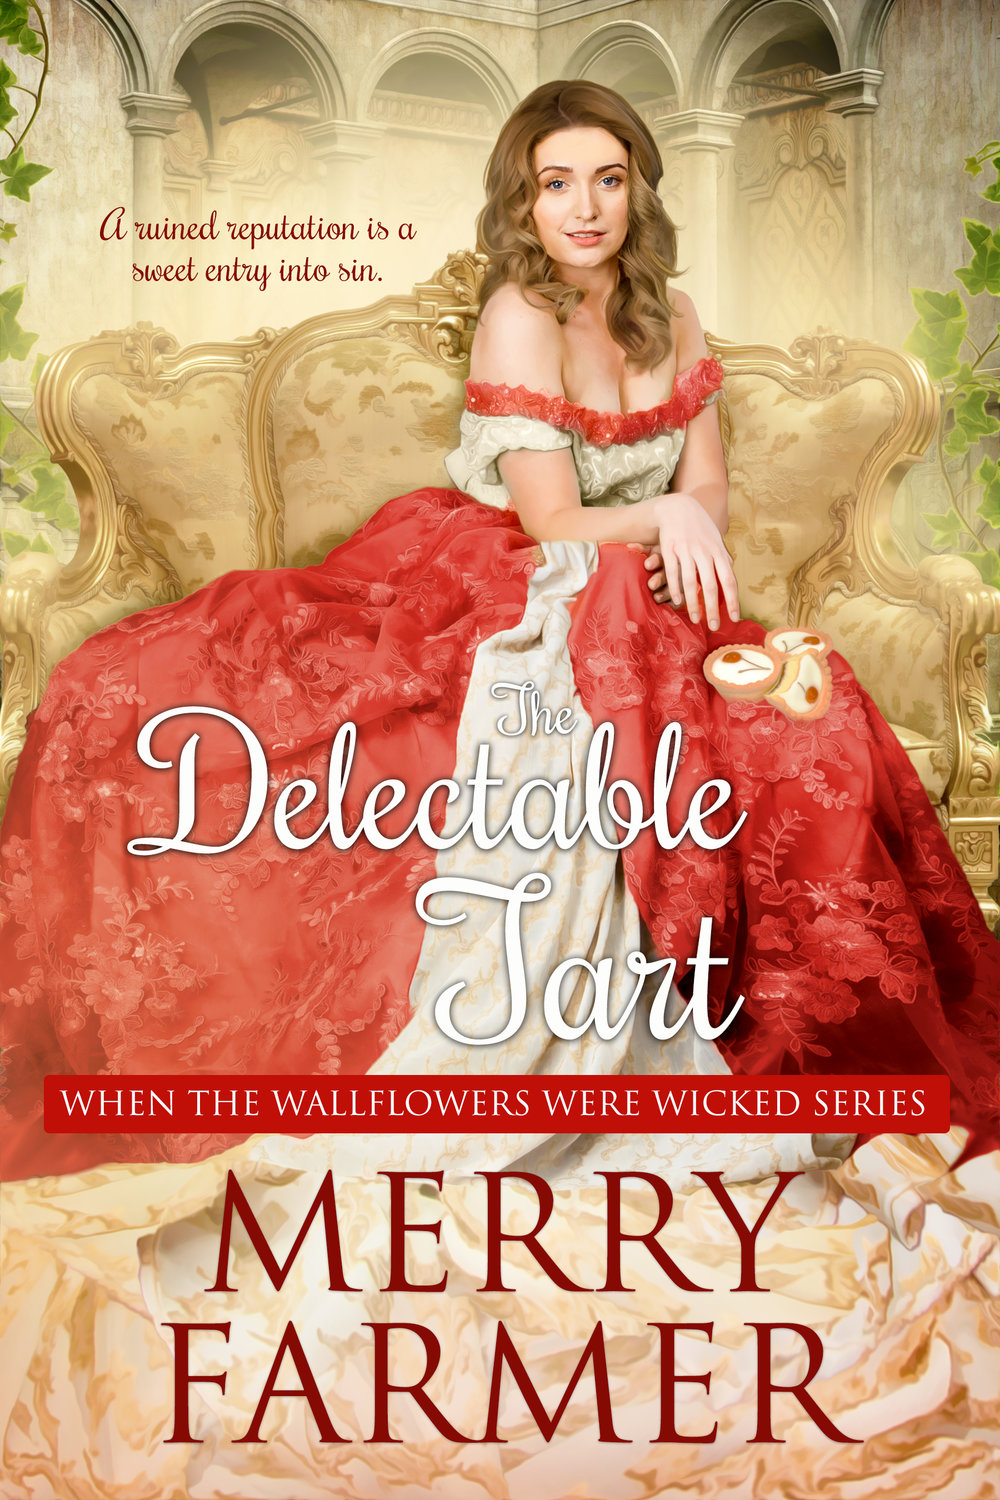 The Delectable Tart (Book Three) - A ruined reputation is a sweet entry into sin…Life is decidedly unfair for Miss Sophie Barnes. After her sisters' falls from grace, she has been left without friends, without a place in society, and without the first clue what to do with her life. All respectable paths are closed to her, but she still wants to make a name for herself instead of feeling invisible in her own skin. And as it turns out, being seen in nothing but her skin might be the solution she's been looking for.Jonathan Foster is the illegitimate son of a sugar plantation owner, and though running his father's business in London has made him wealthy, his true calling is as a pastry chef and confectioner. When he meets Sophie, he sees her as the perfect canvas for his art and the perfect companion for his life. Ambition has never tasted so good.But when a familiar villain is discovered to be selling secrets to French pirates, Sophie and Jonathan must stretch their delicious new alliance to do more than just entertain the members of the ton who once turned their backs on Sophie, they must catch the spies and see them brought to justice.A light-hearted, fun, SUPER steamy, Regency romp—a quick read, not to be taken too seriously.PLEASE BE ADVISED – Steam Level: Five-Alarm Fire with a generous helping of F-bombs. Don't say you weren't warned.